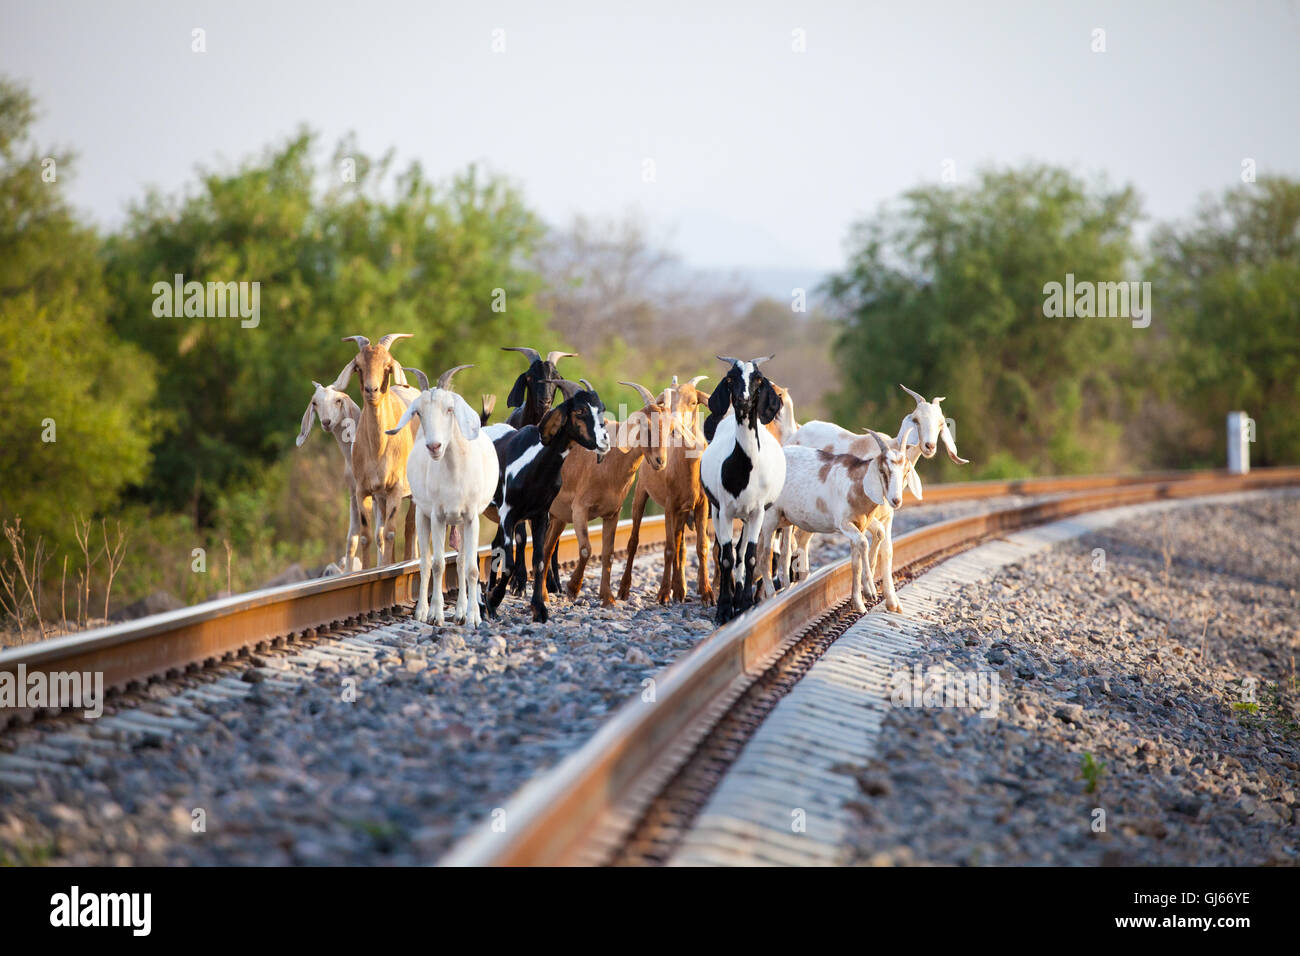 Goats wait on the Chepe train tracks near the station in El Fuerte, Sinaloa, Mexico. - Stock Image